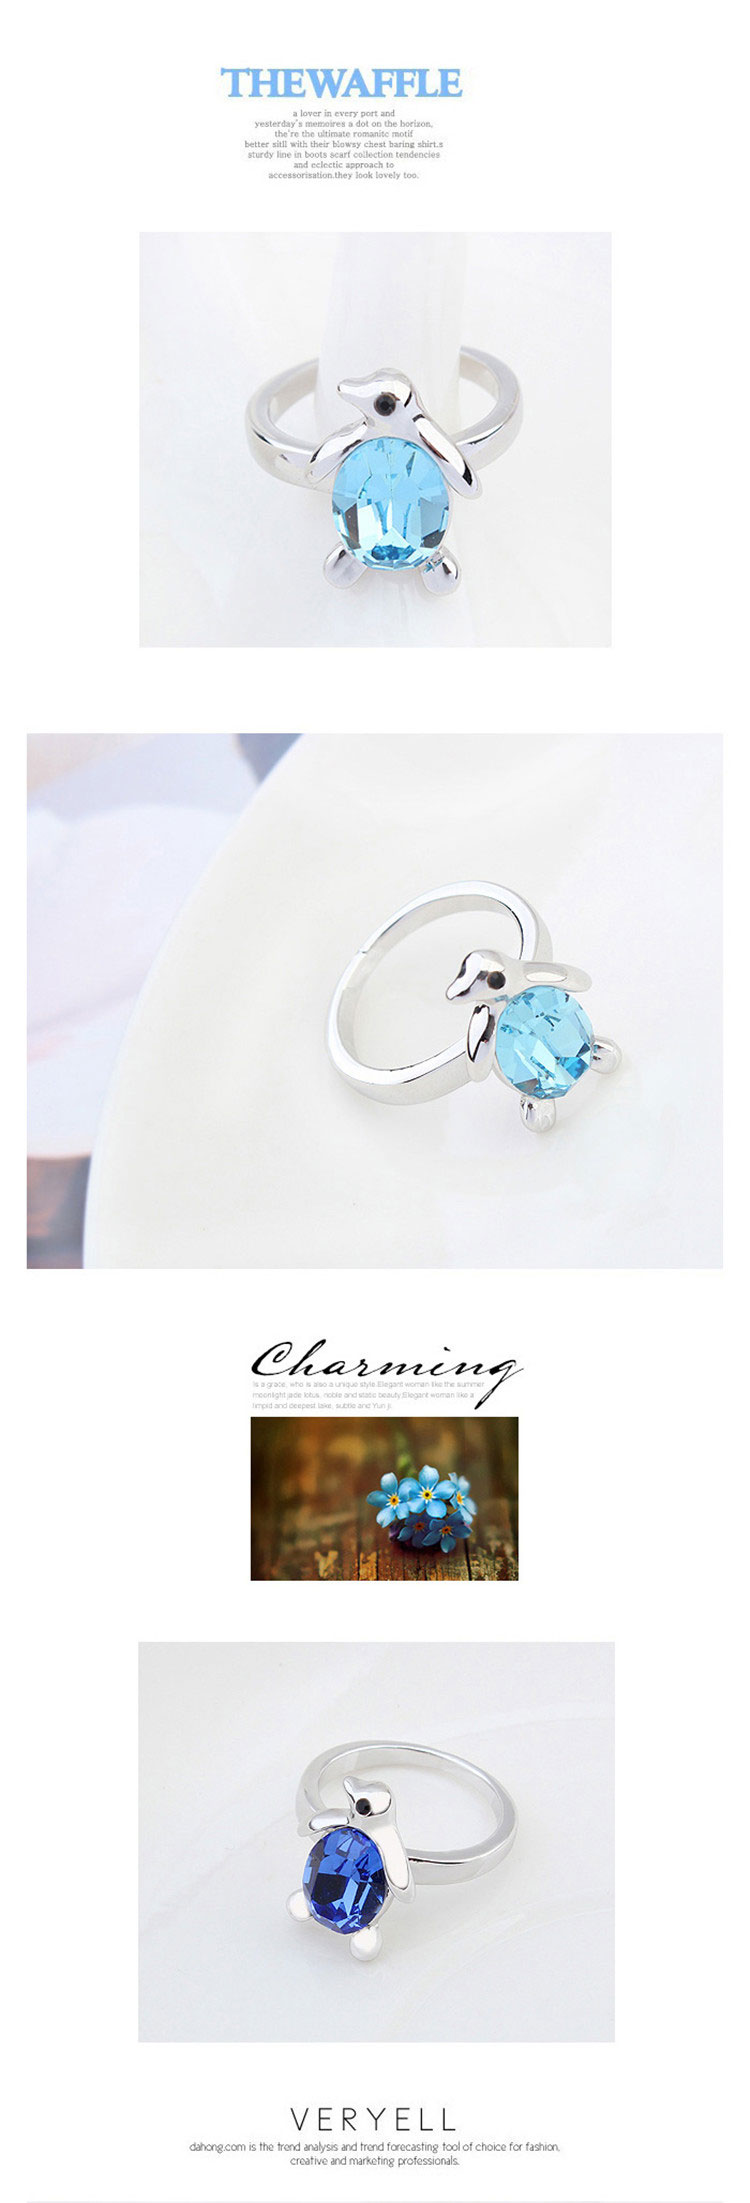 f09cd948a Cute Penguin Blue Stone Luxury Jewelry Ring Crystals From Swarovski ...